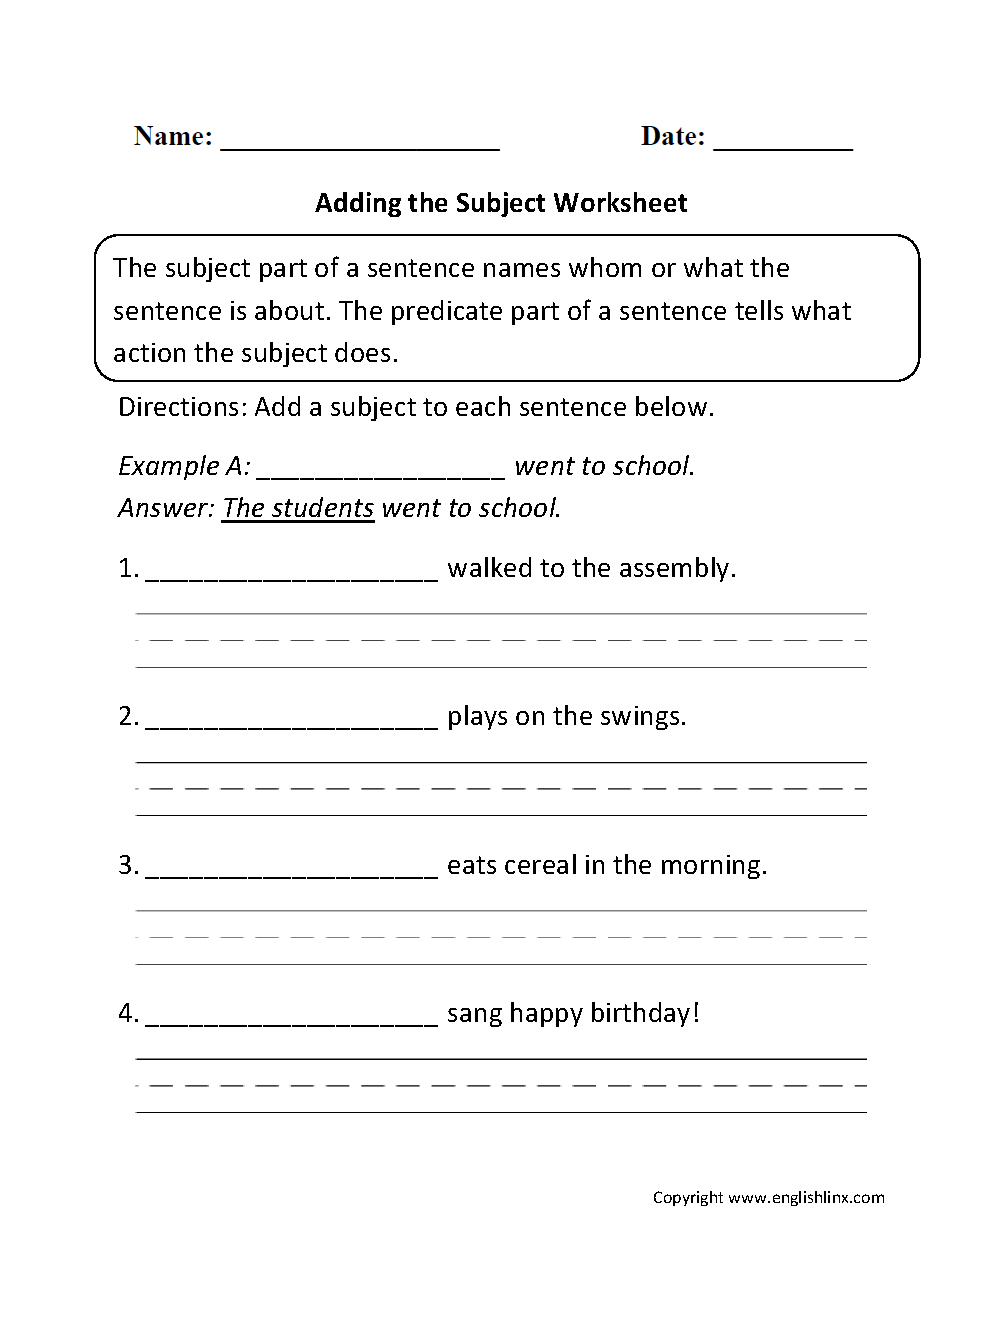 worksheet Subject Predicate Worksheets subject and predicate worksheets adding the worksheet worksheet